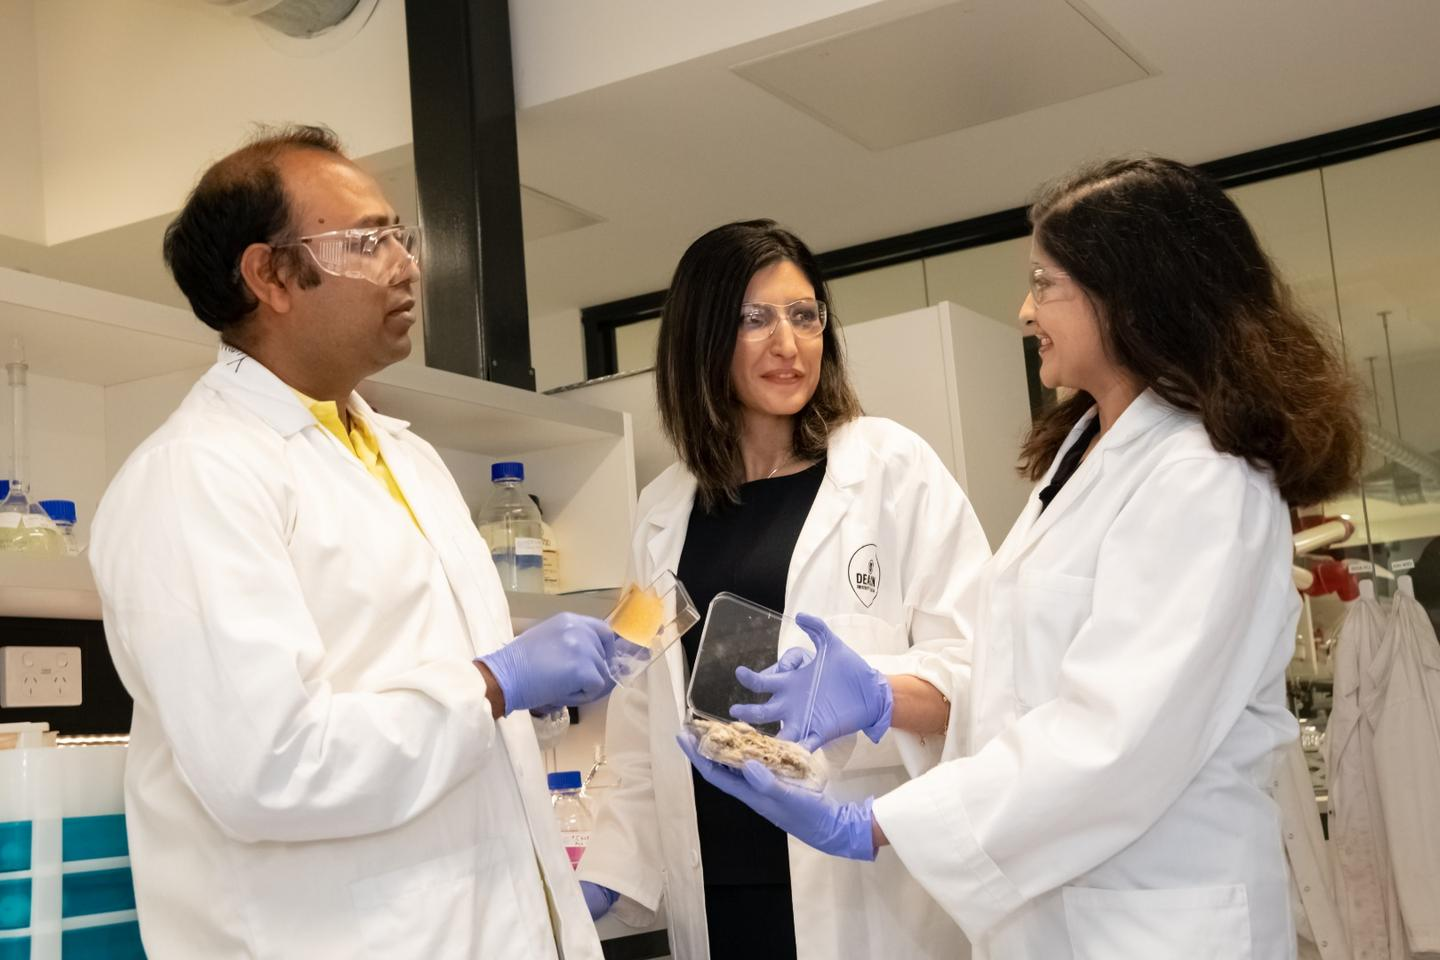 PhD candidate Abu Naser Md Ahsanul Haque (left), Dr. Maryam Naebe and associate research fellow Dr. Rechana Remadevi, with samples of the bioplastic